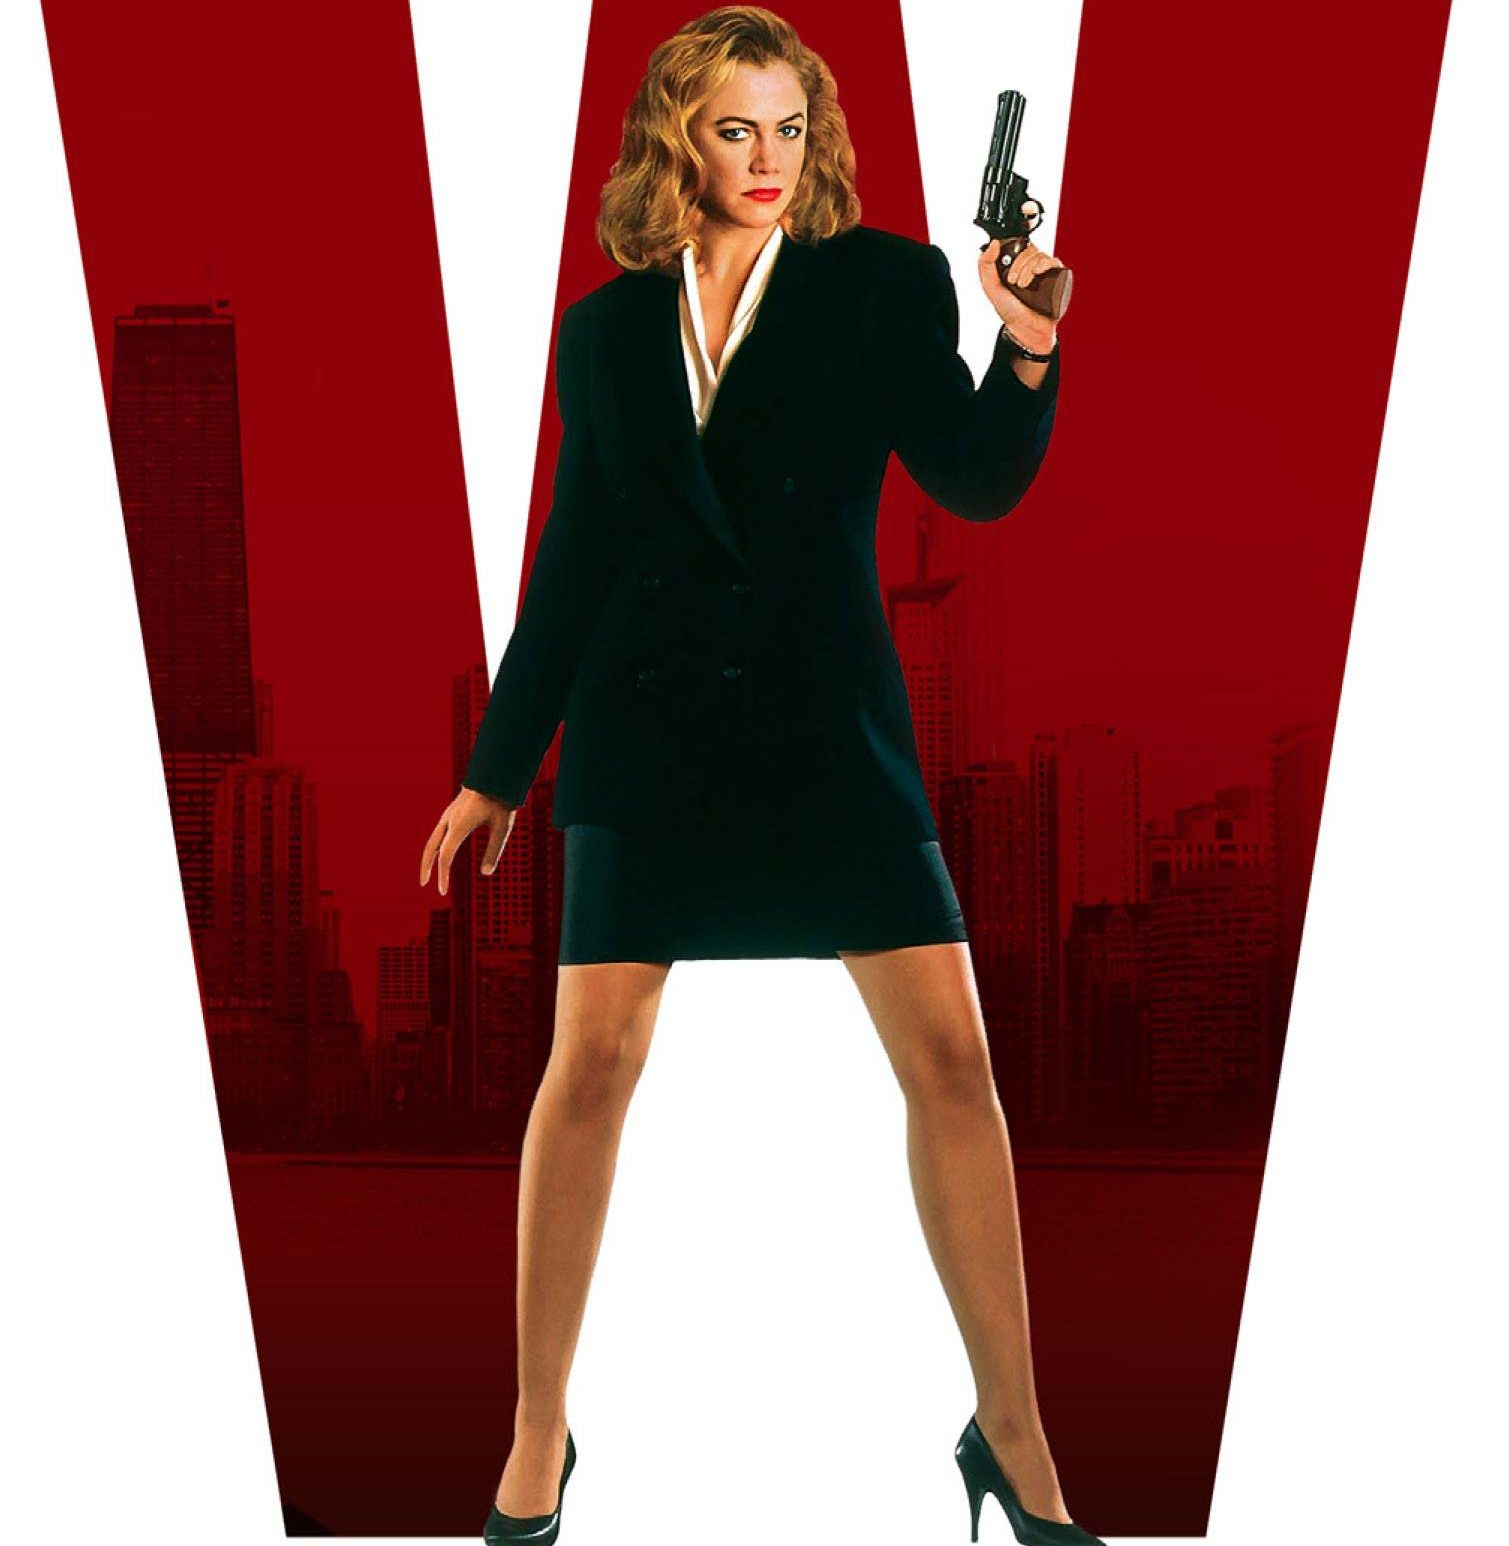 738329228156 e1602080051357 20 Things You Probably Didn't Know About Kathleen Turner